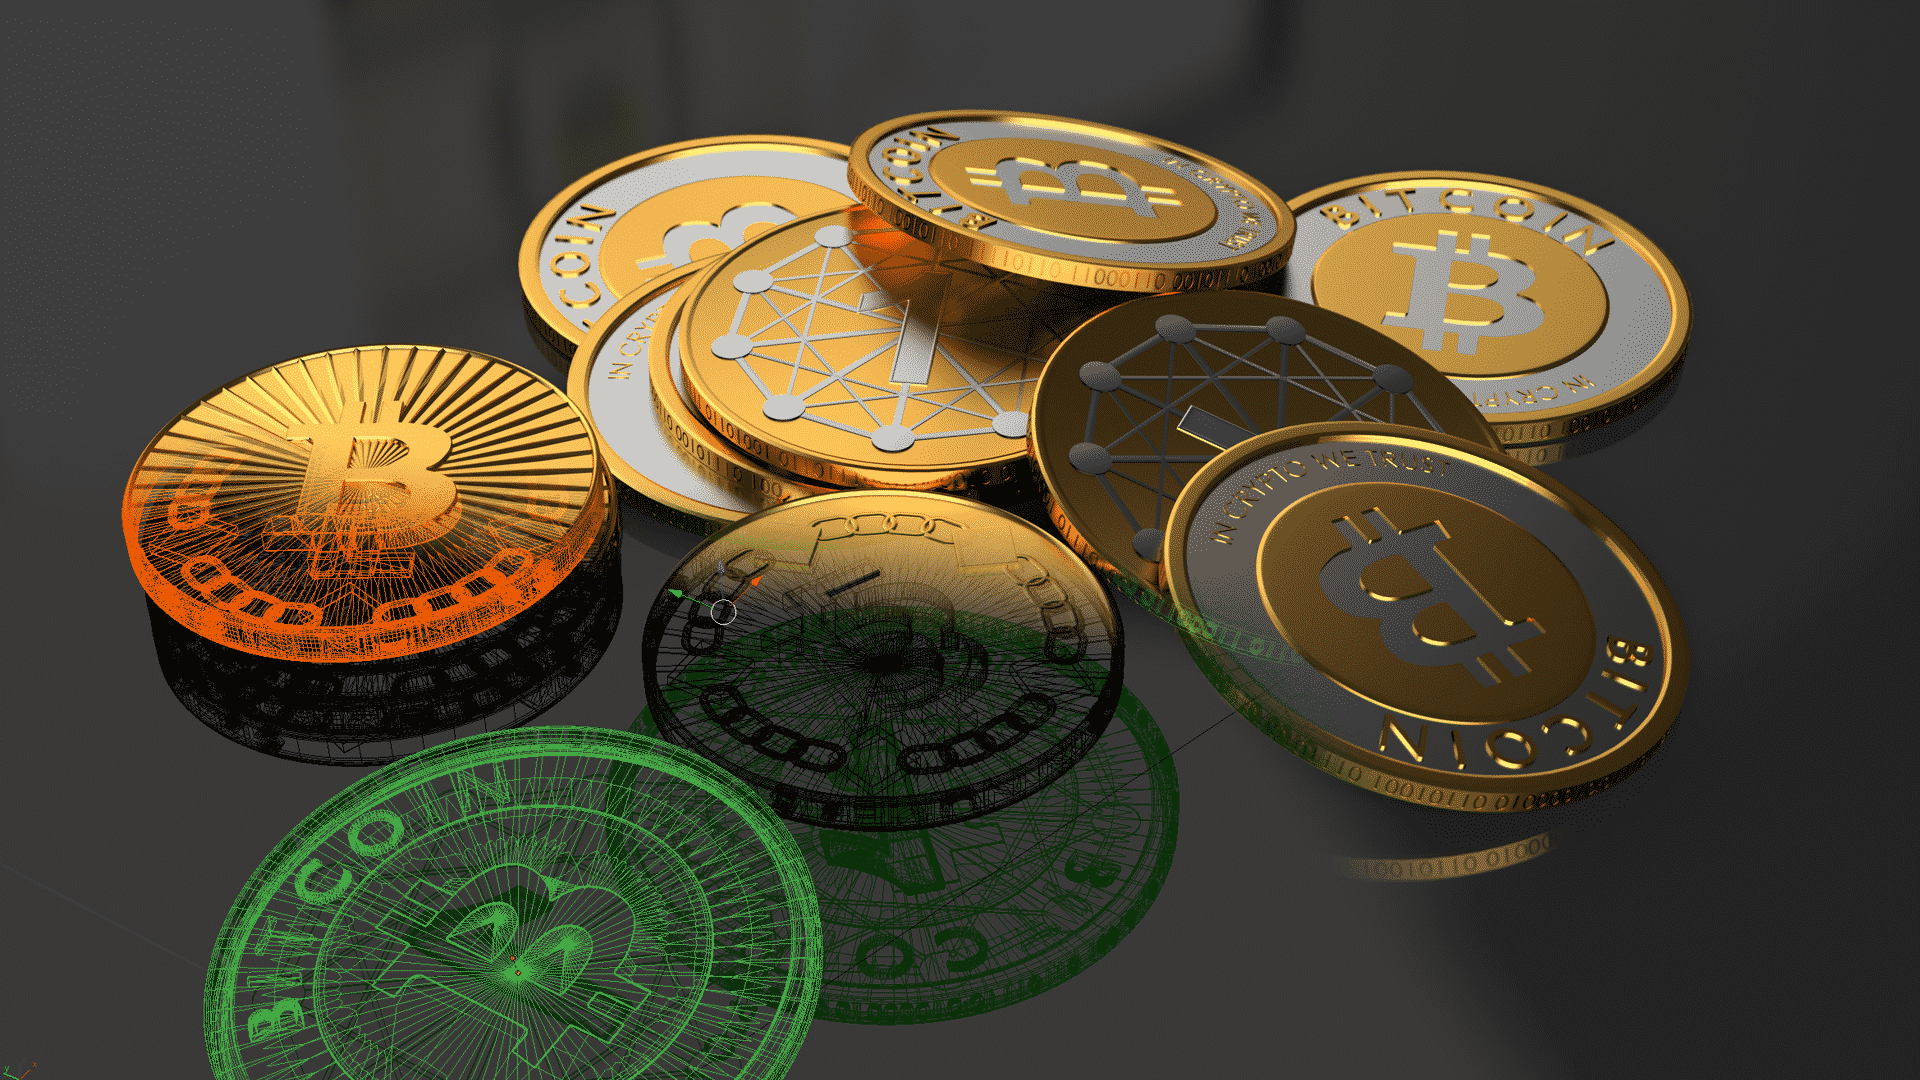 Nations taking measures to combat virtual currency